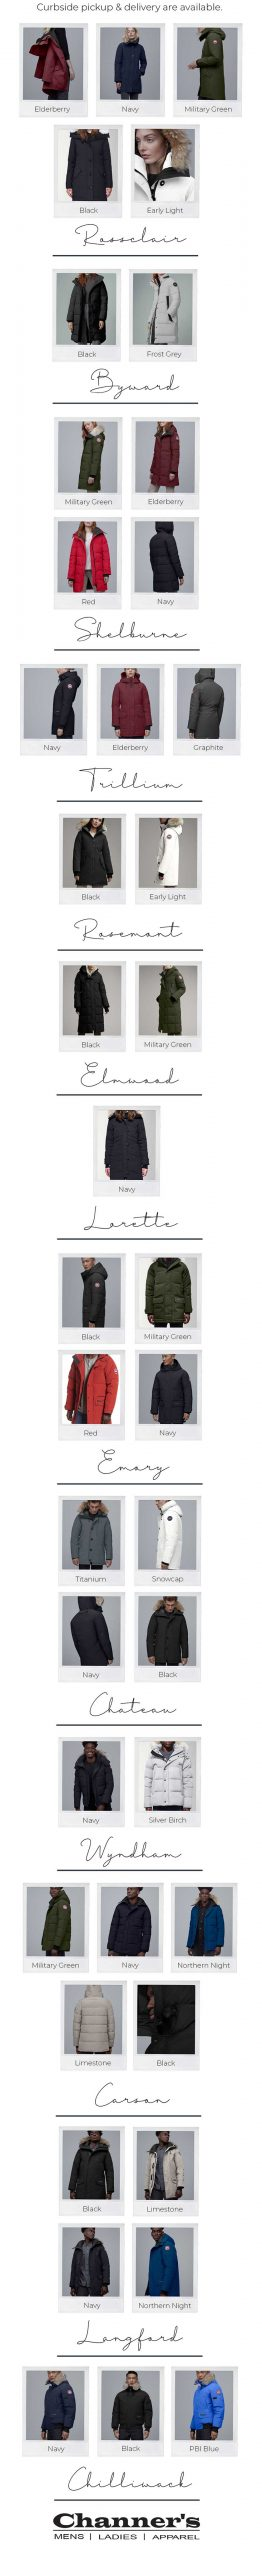 Canada Goose Stock - Channer's London